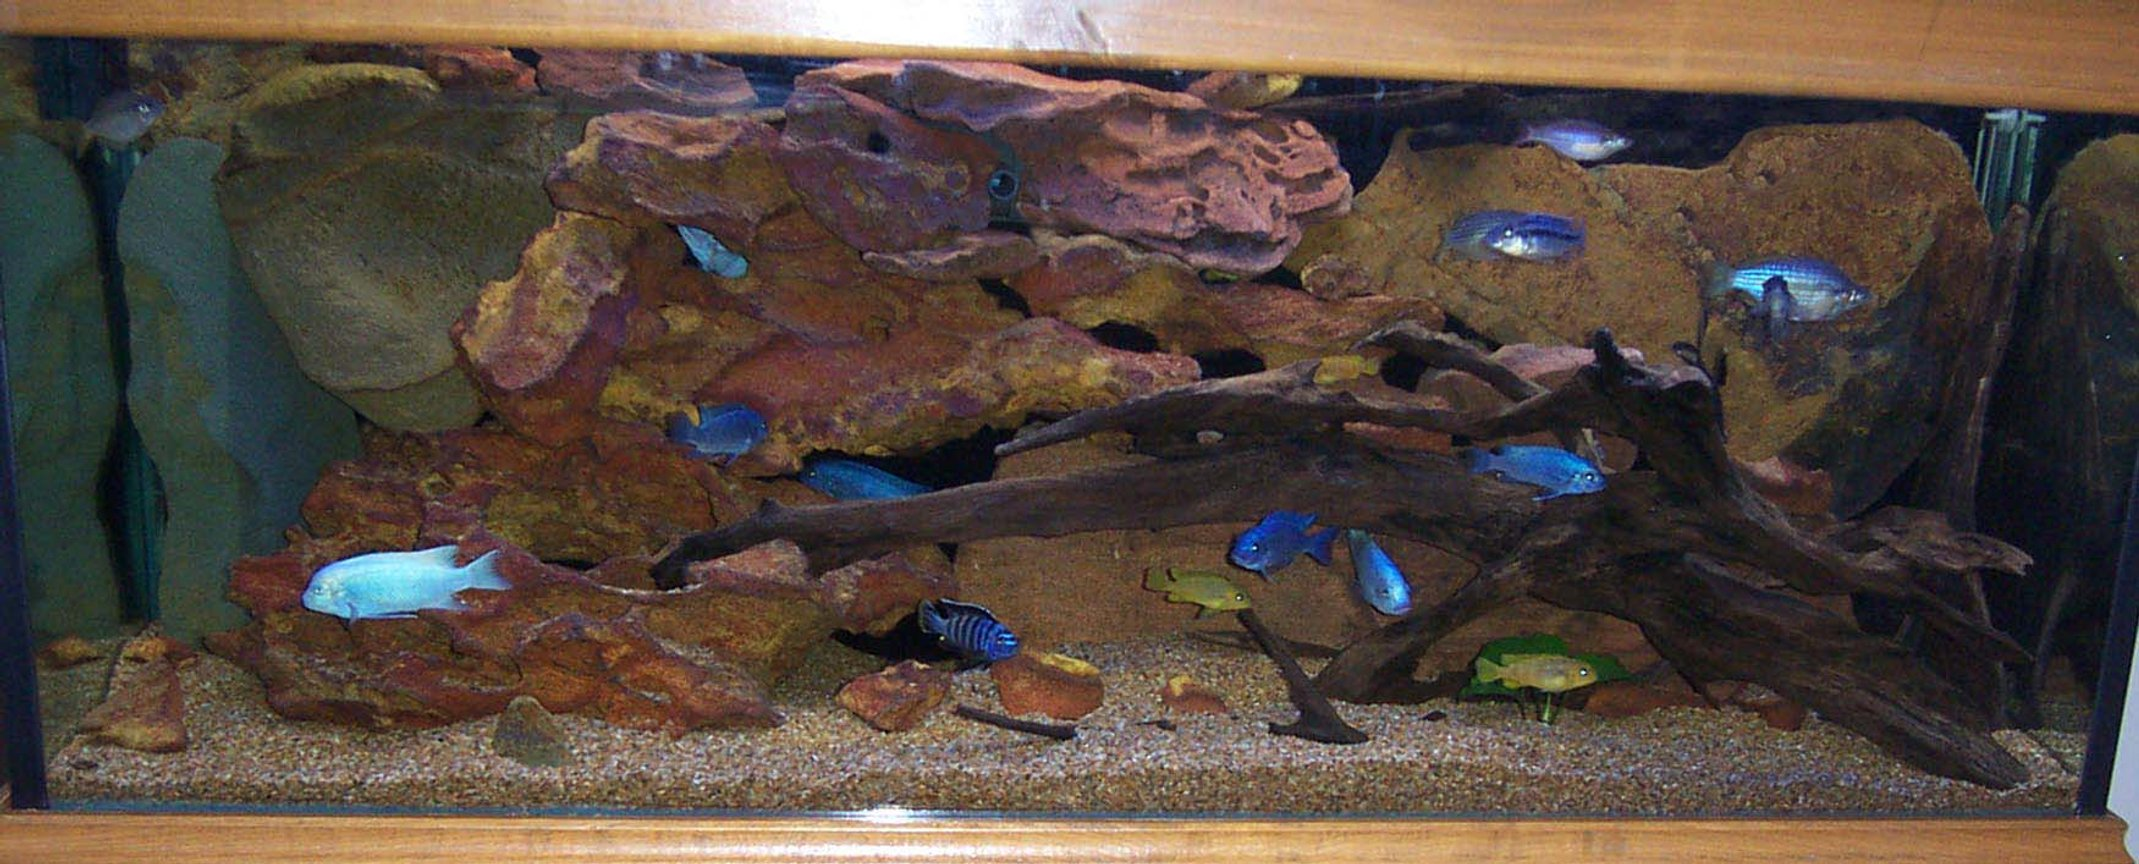 freshwater fish tank (mostly fish and non-living decorations) - 4ft 120 litre tank. mainly cichlids with some Australian native rainbows thrown in which seem to get along with the cichlids just fine.I like LOW MAINTENANCE tanks that still grab your attention (hence no plants!) and there are some GREAT tanks on this site that meet that criteria. Max out filtration for really happy tank. I'm running a fluval 304, 1200lph power head, eheim cannister filter + 16w UV sterilizer. I can't stop them breeding and coloring up so I guess they're happy. Cheers-